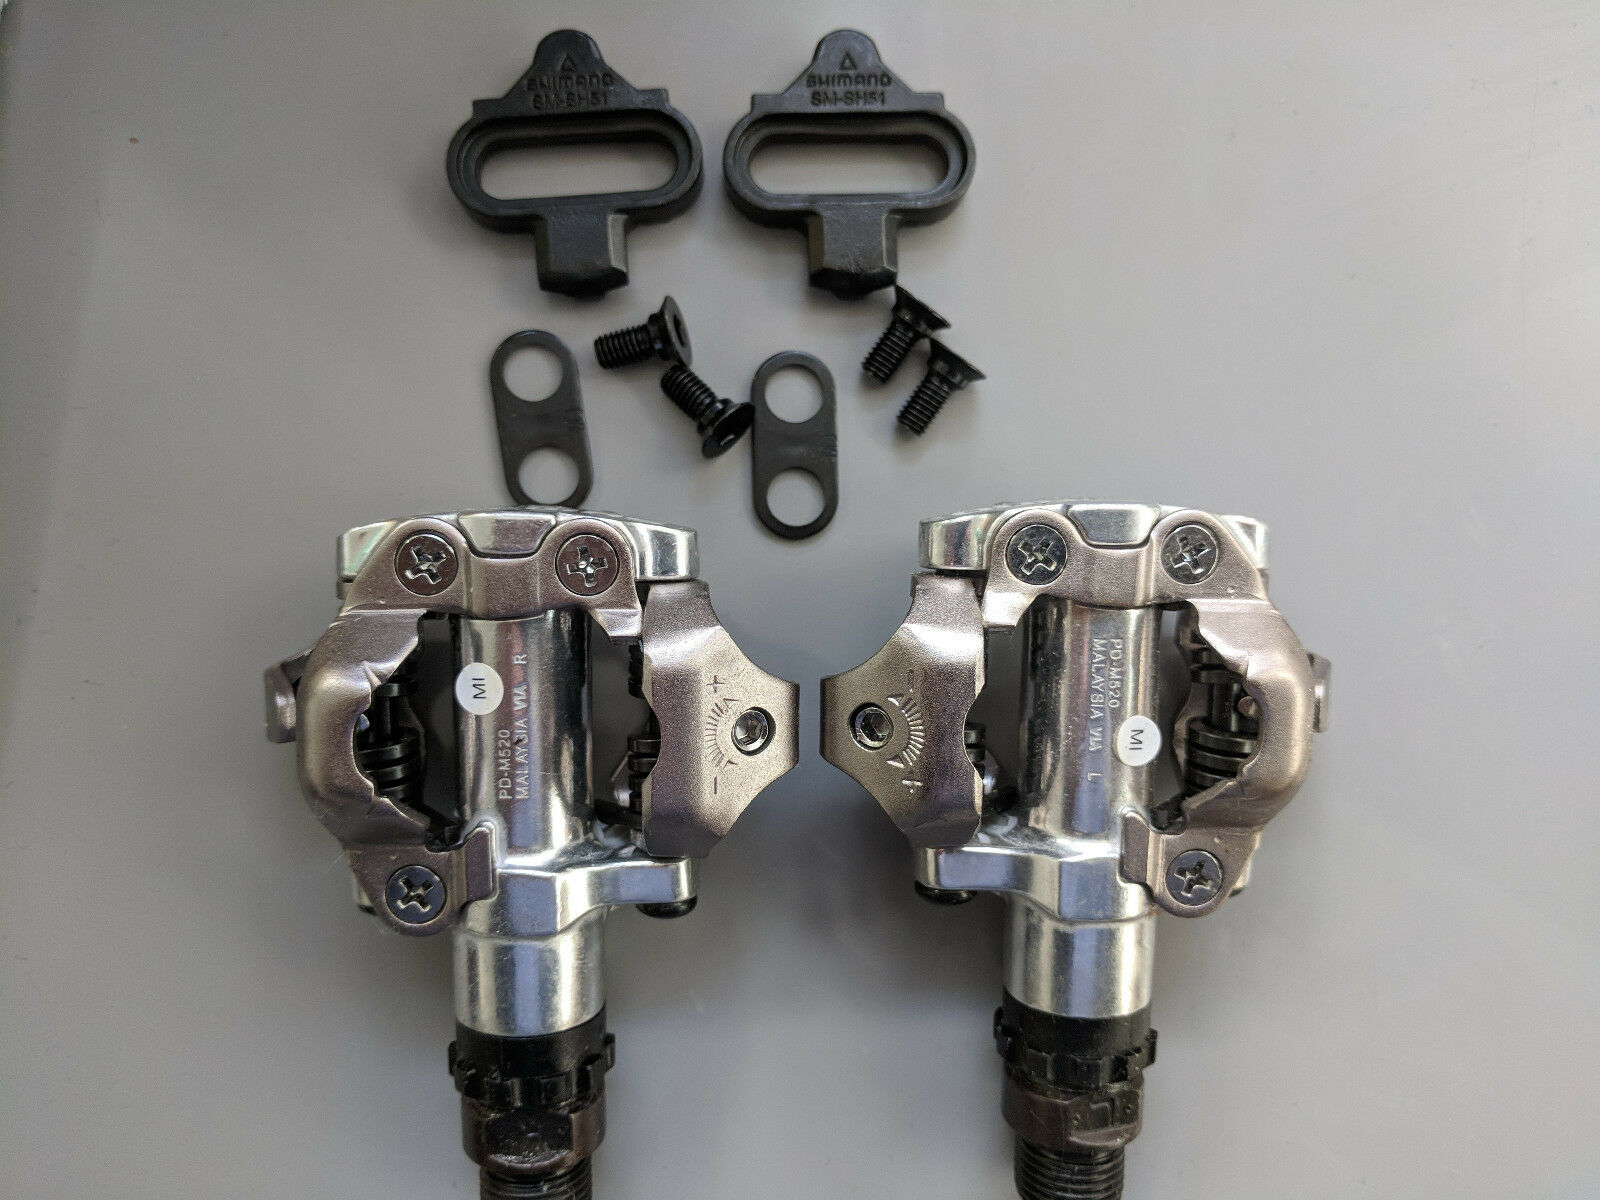 Shimano PD M520 SPD  Pedals + Cleats, new genuine Shimano Recorded delivery